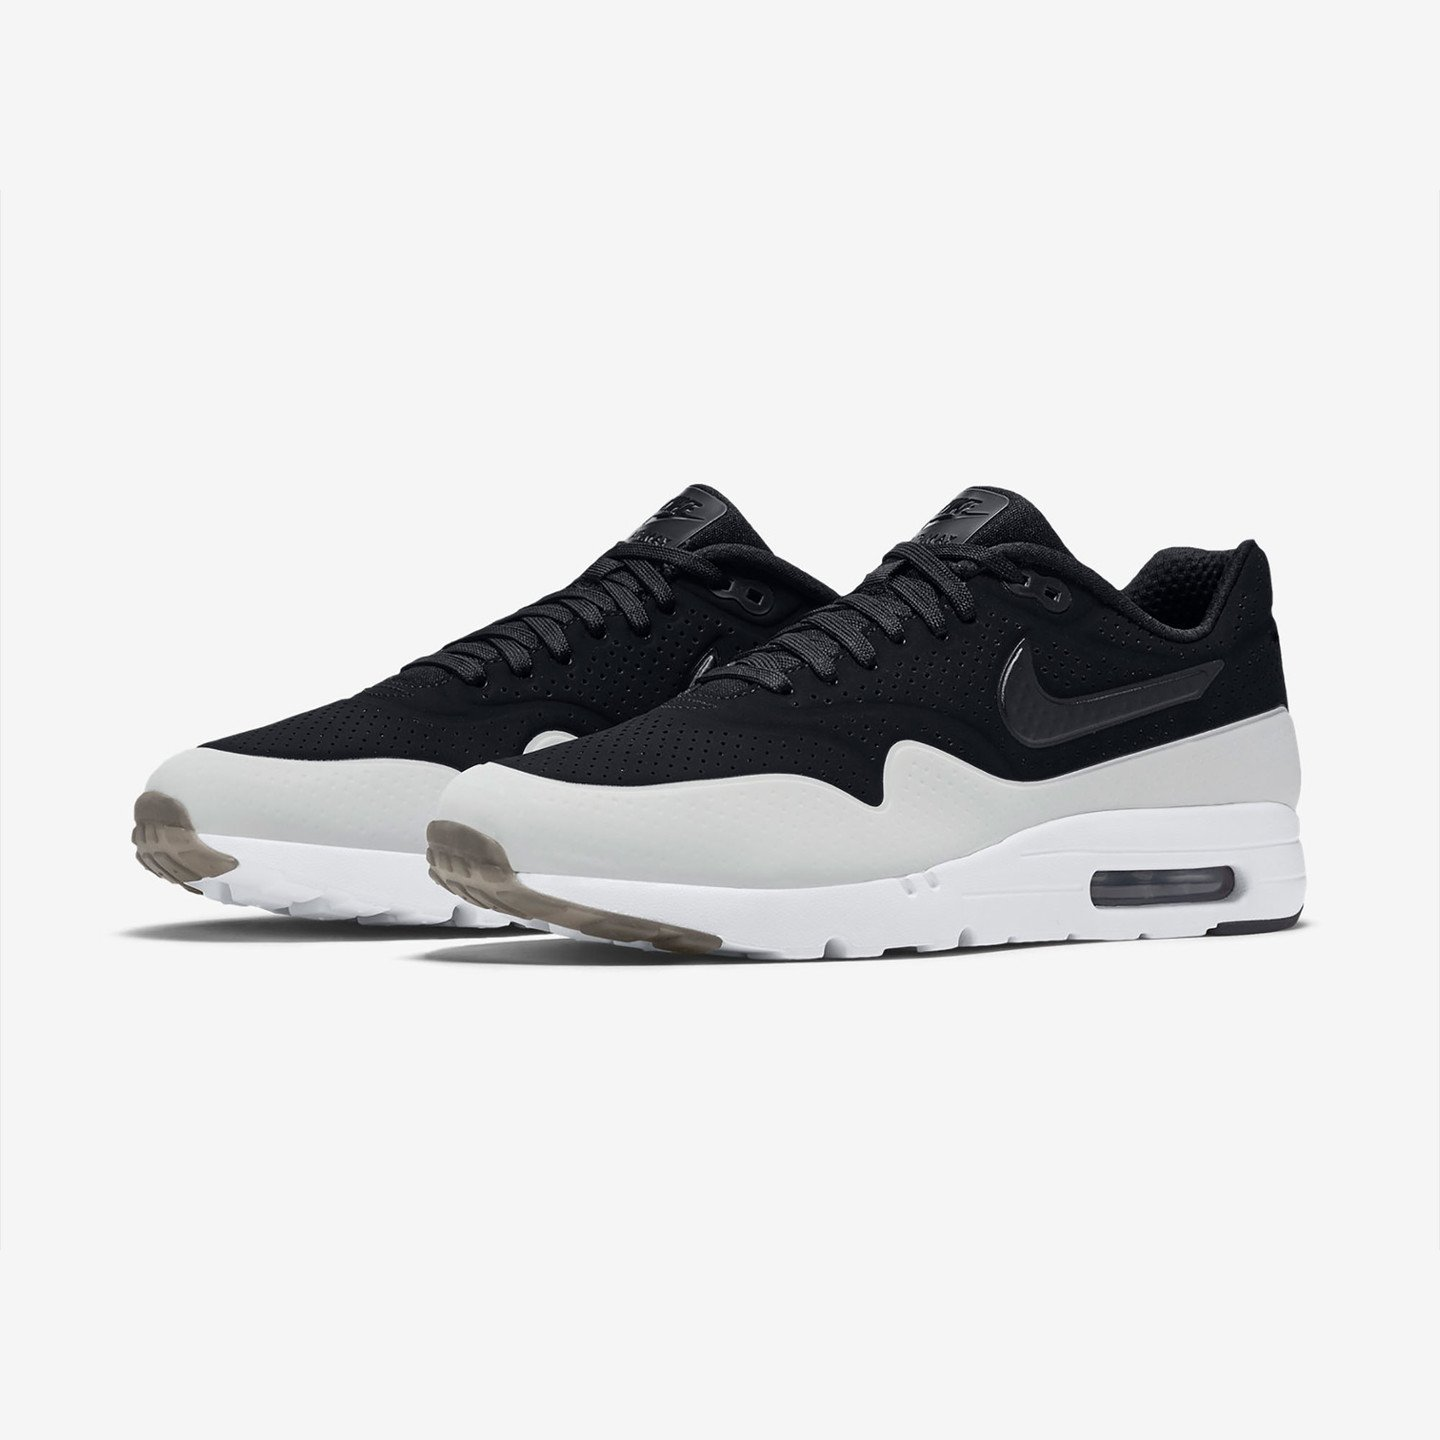 Nike Air Max 1 Ultra Moire Black / White 705297-011-45